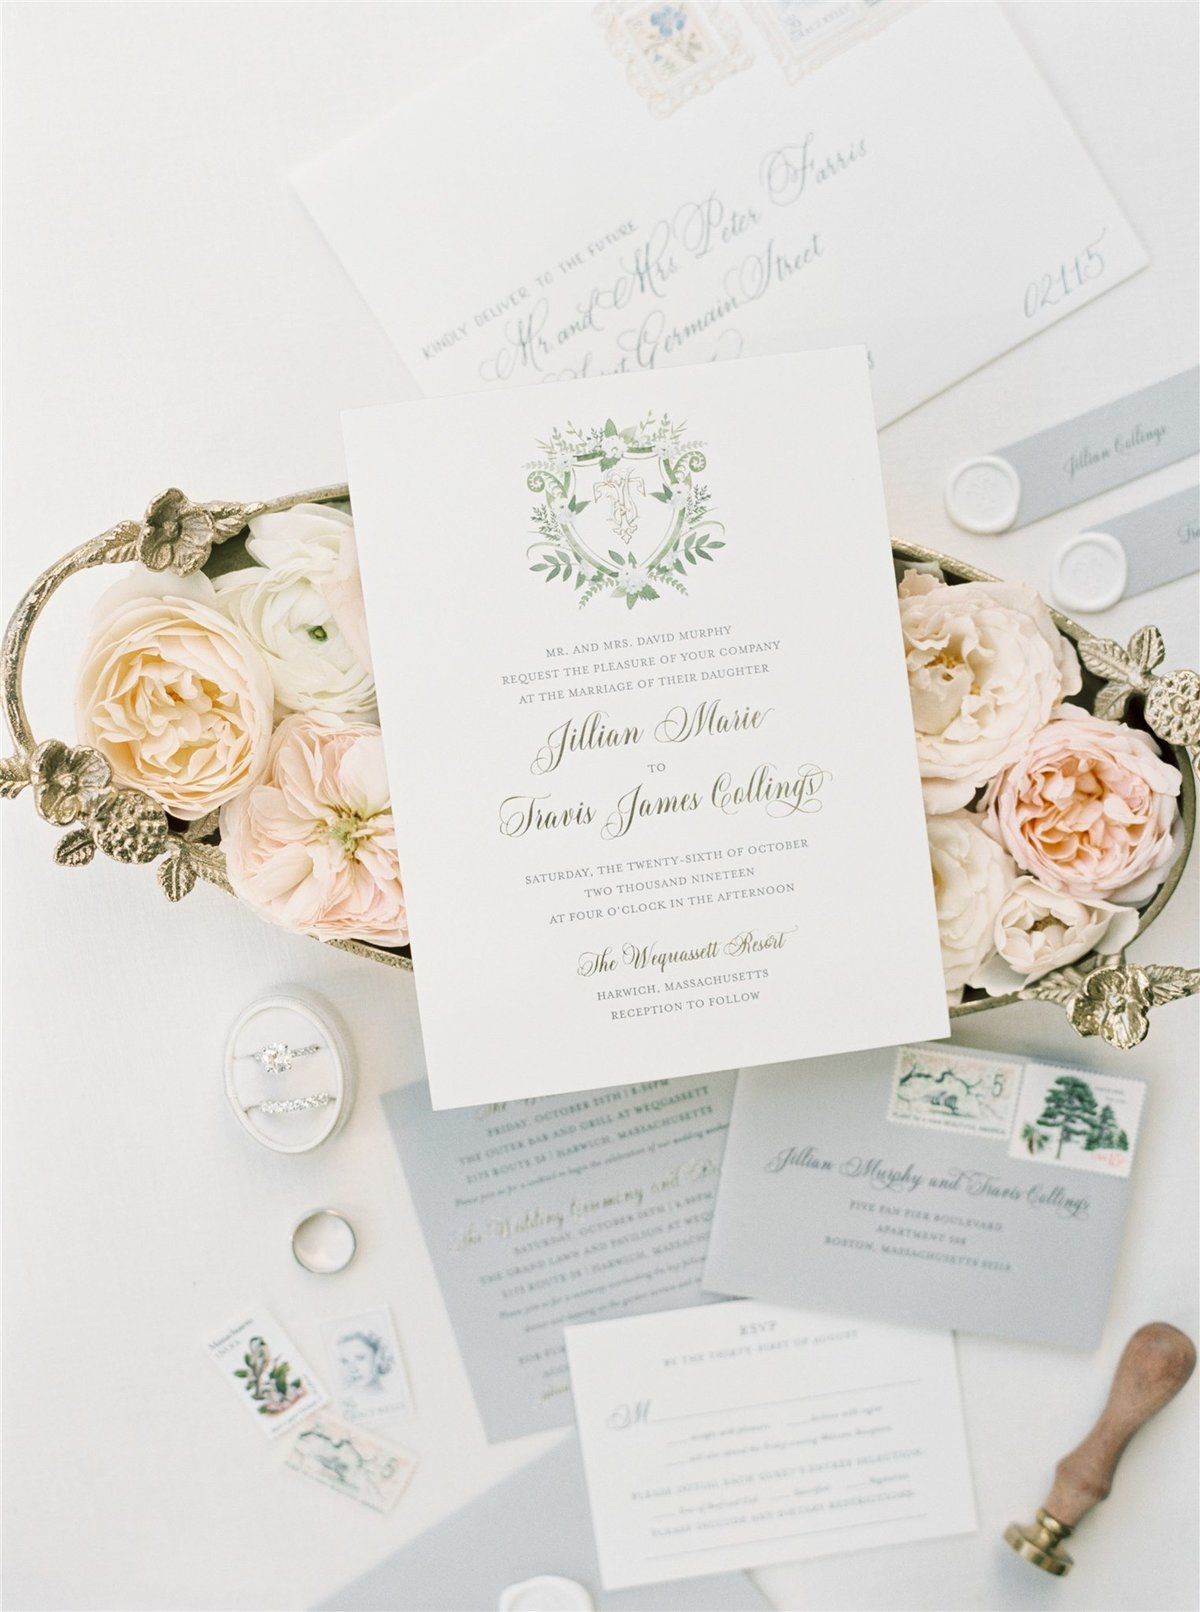 Letterpress wedding invitation with gray envelopes for a Cape Cod Wedding by luxury Cape Cod wedding planner and designer Always Yours Events